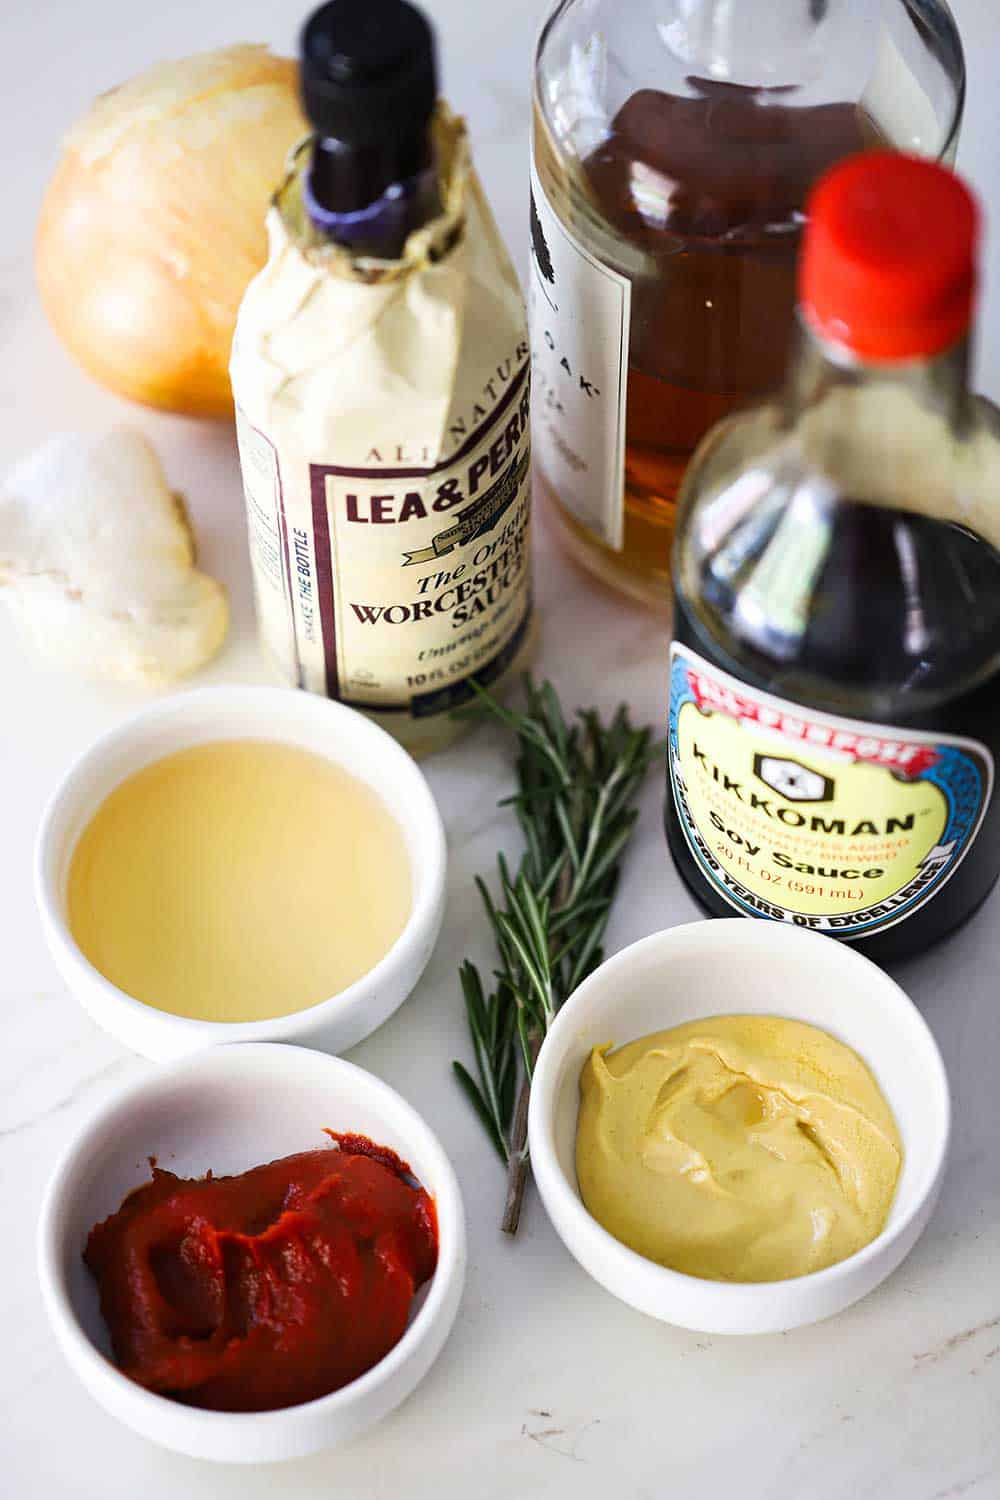 The ingredients for steak sauce including bowls of tomato paste, mustard, vinegar and bottles of soy sauce and Worcestershire